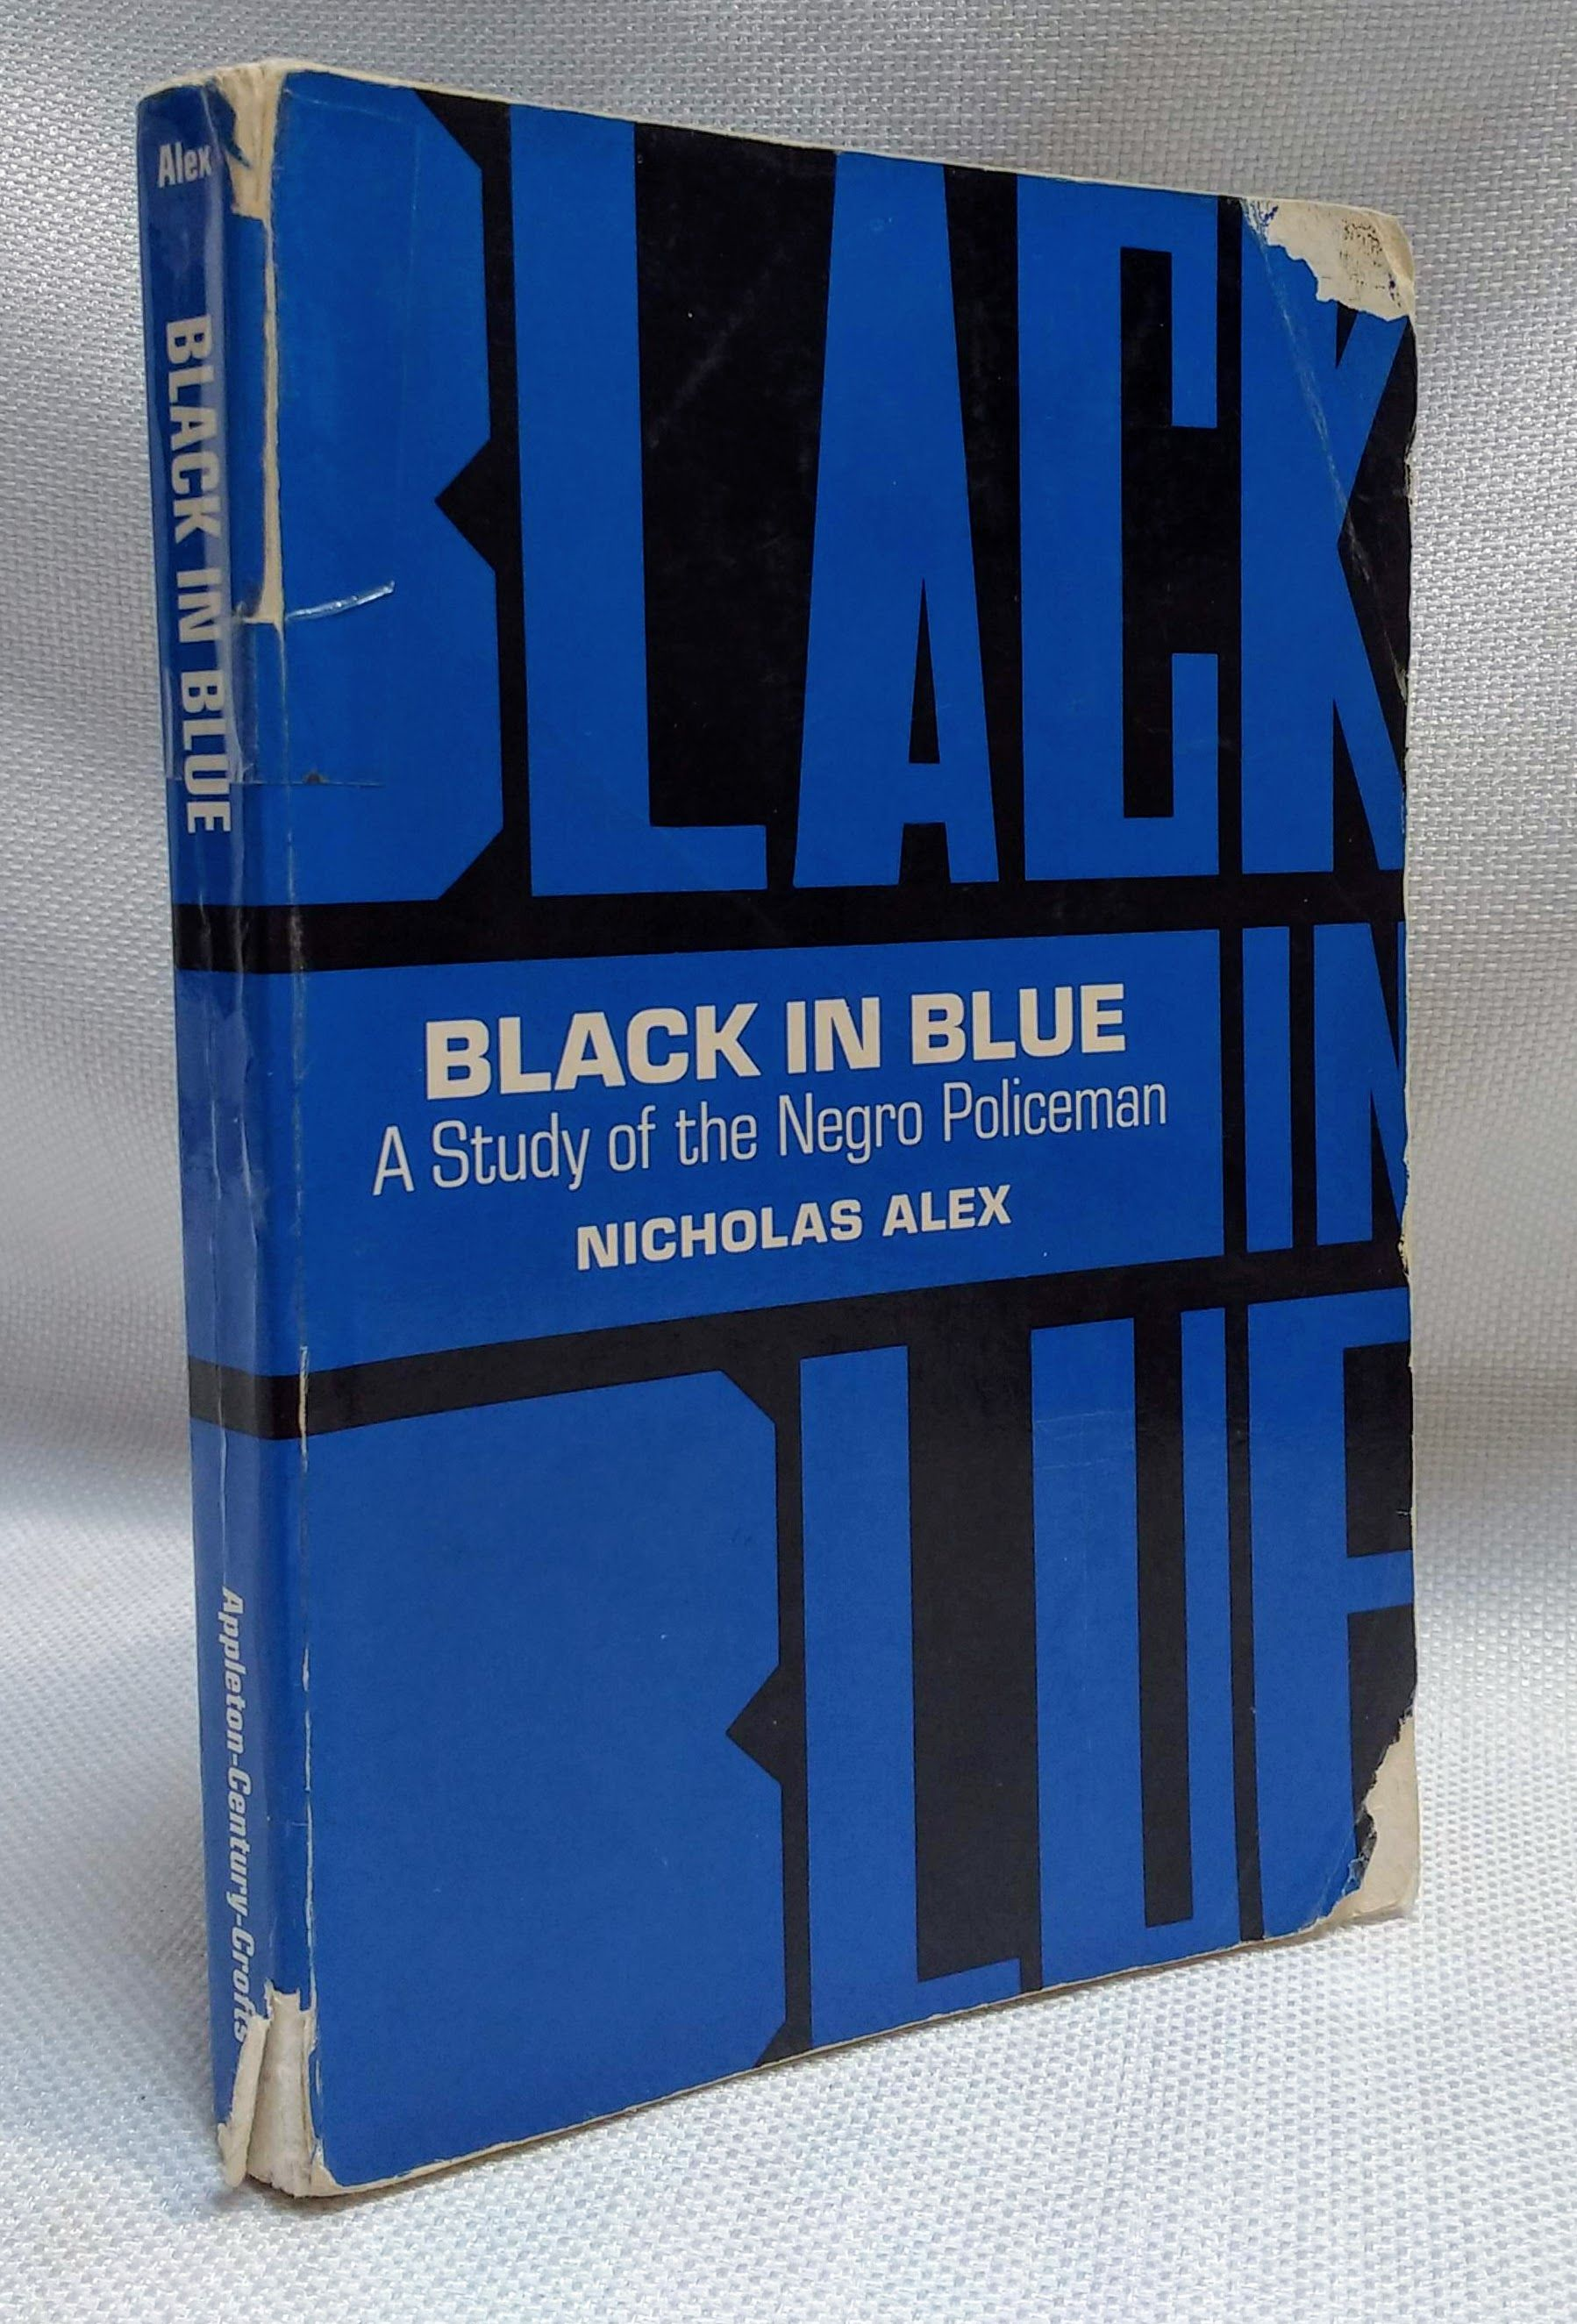 Black in Blue: A Study of the Negro Policeman, Alex, Nicholas